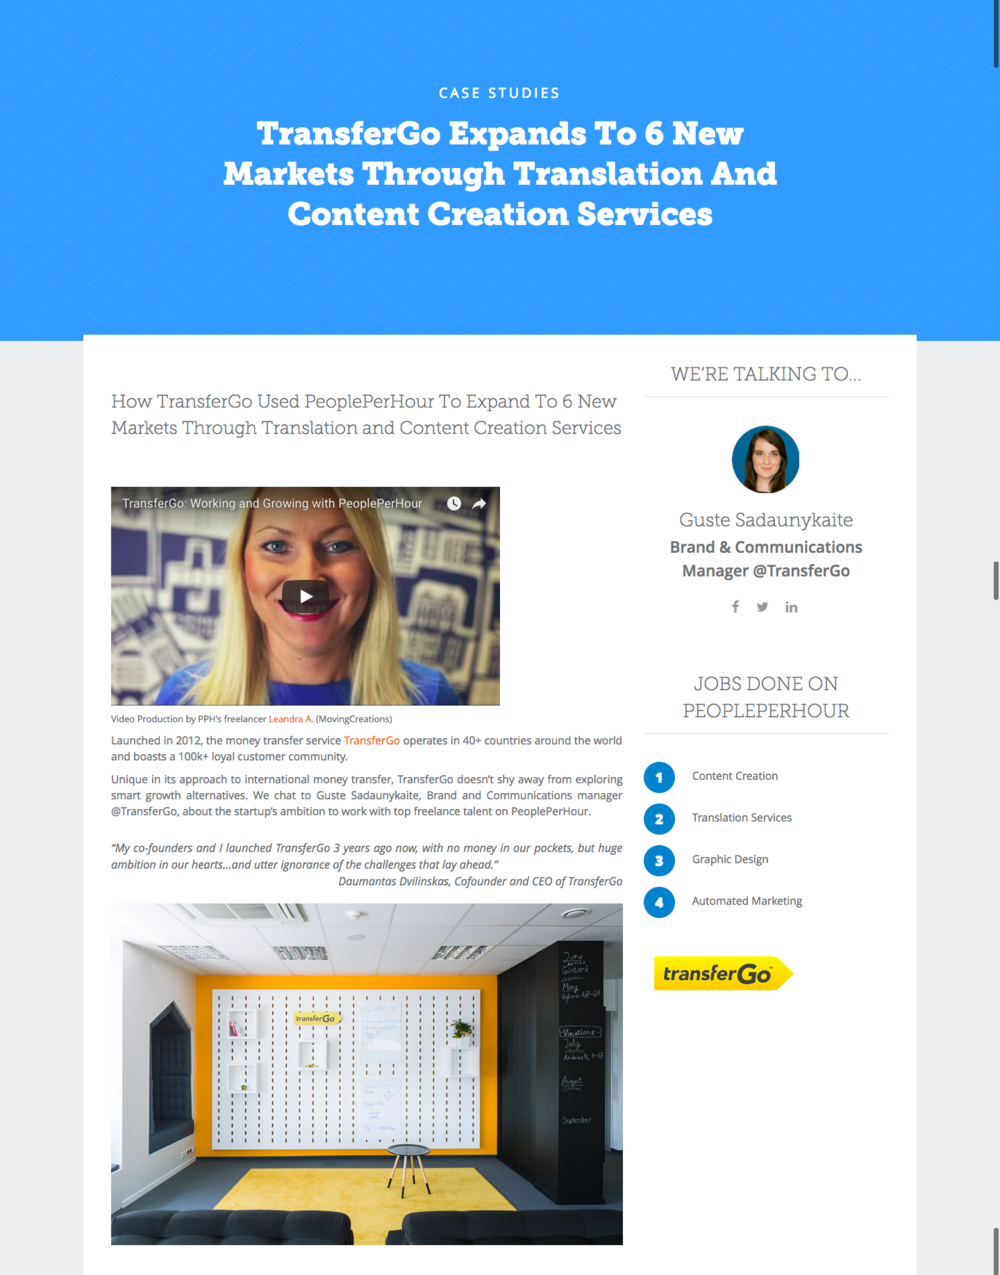 Customer Success Stories - Led the project from A to Z. Carried out internal research to identify the most interesting customer stories. Interviewed customers and crafted the stories, including video testimonials. Collaborated with a web designer to create the landing page concept.